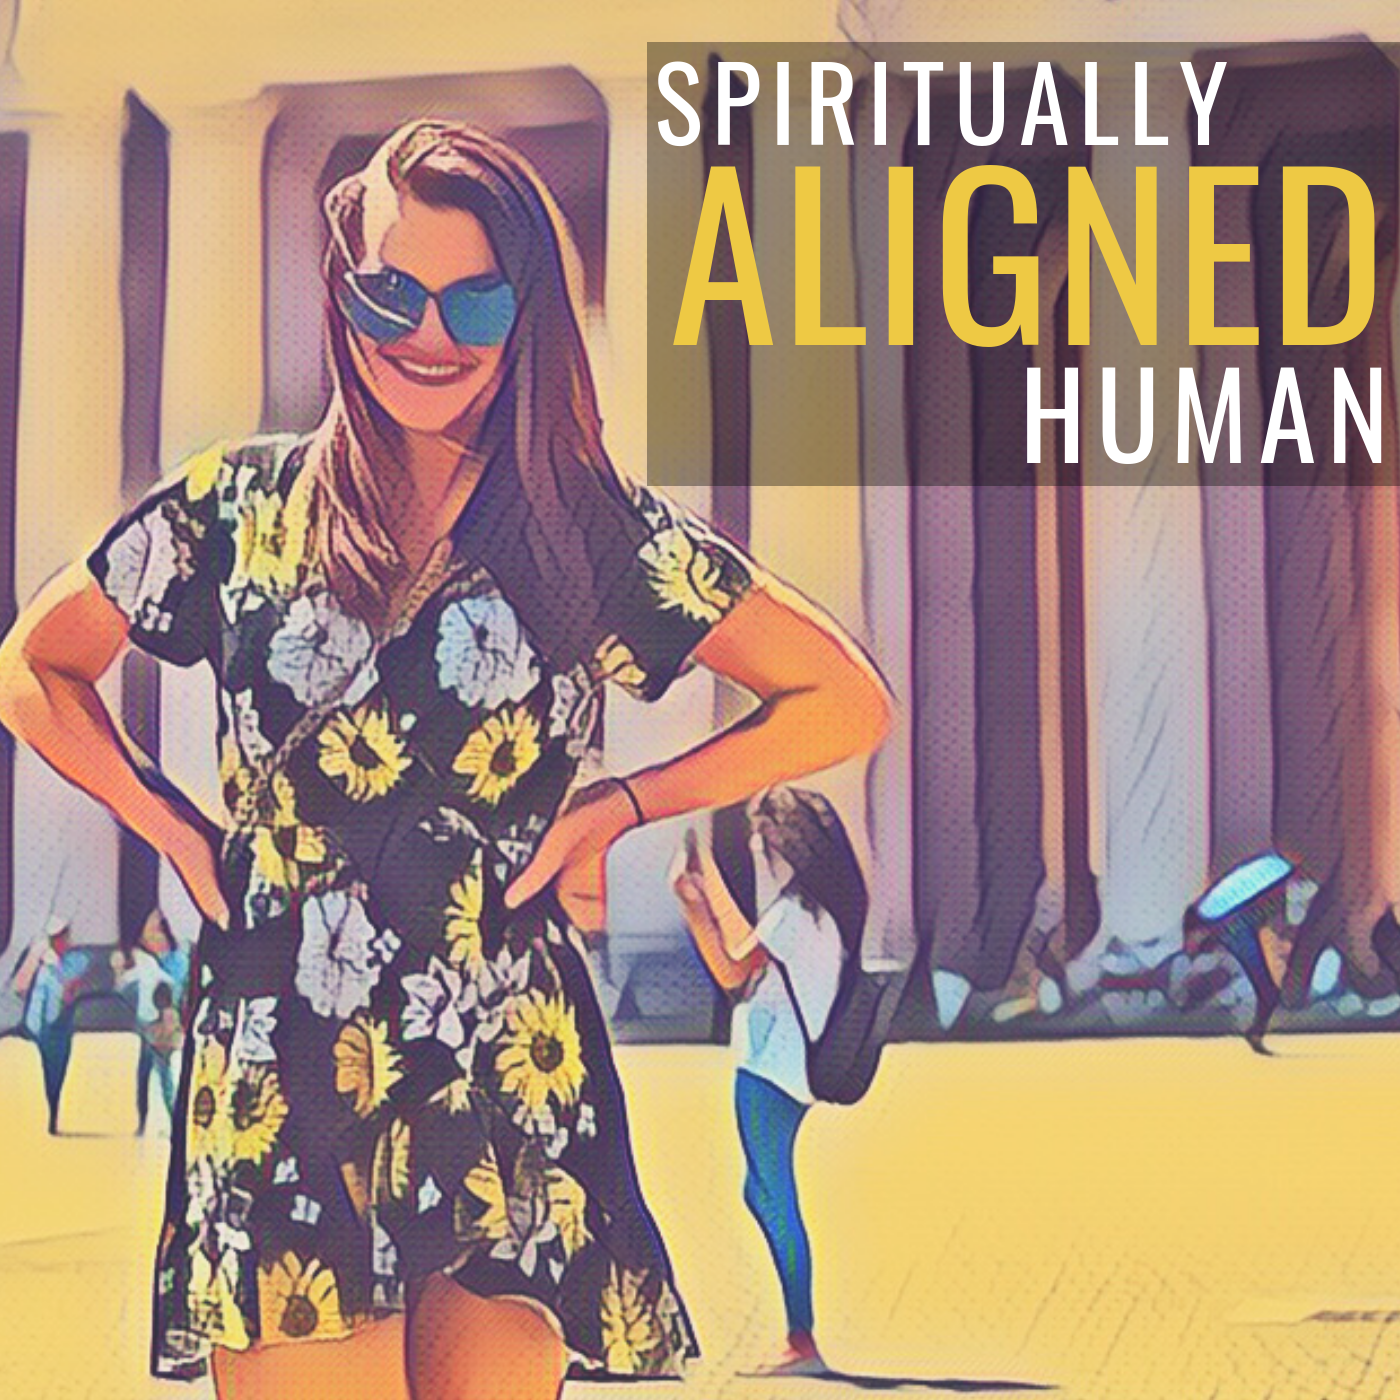 spiritually aligned human